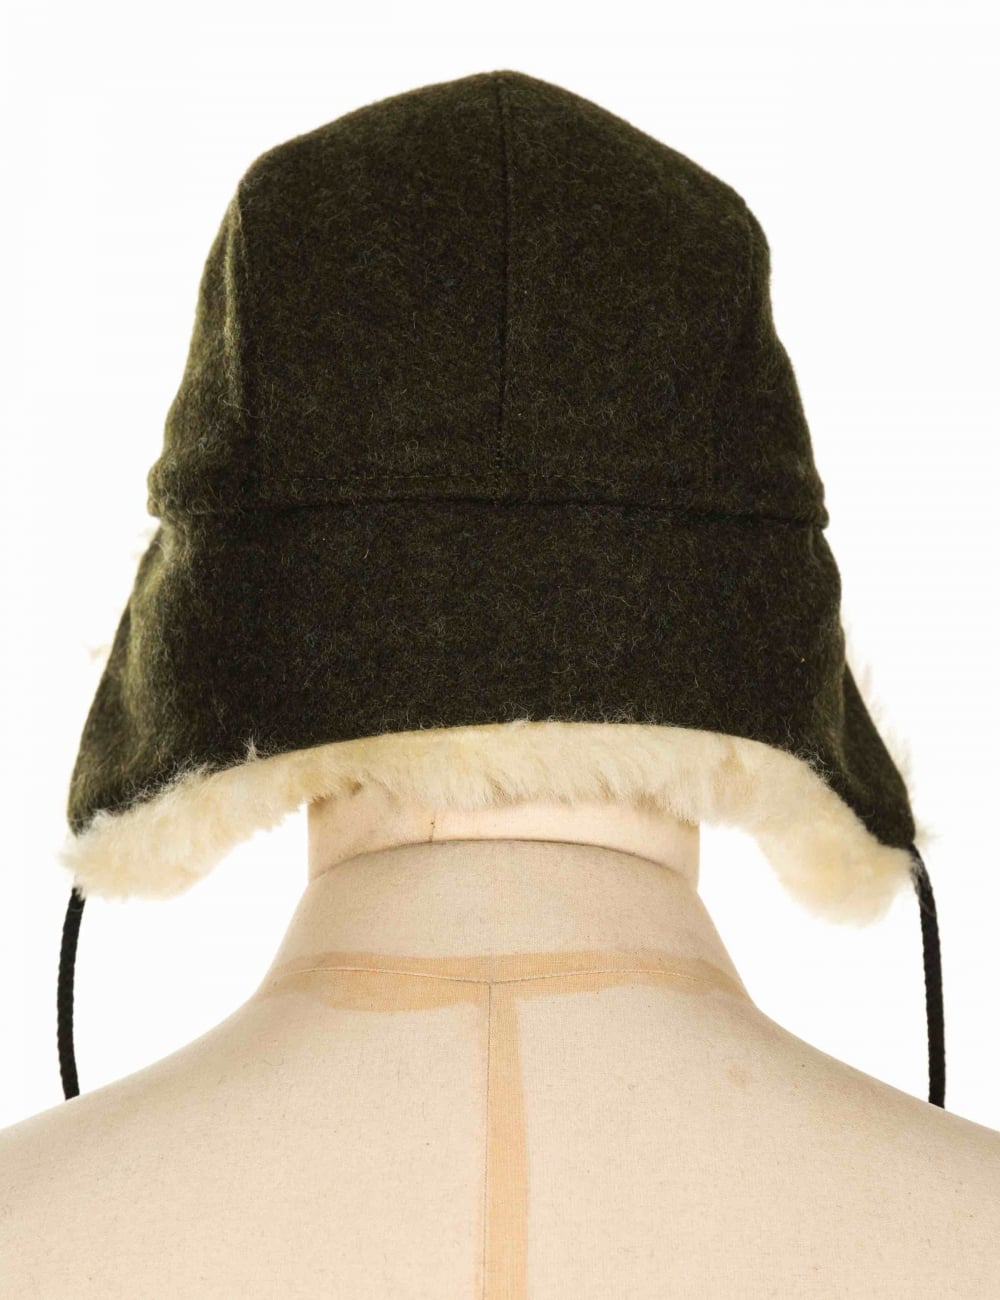 466b35caa87 Filson Double Mackinaw Cap - Forest Green - Hat Shop from Fat Buddha ...